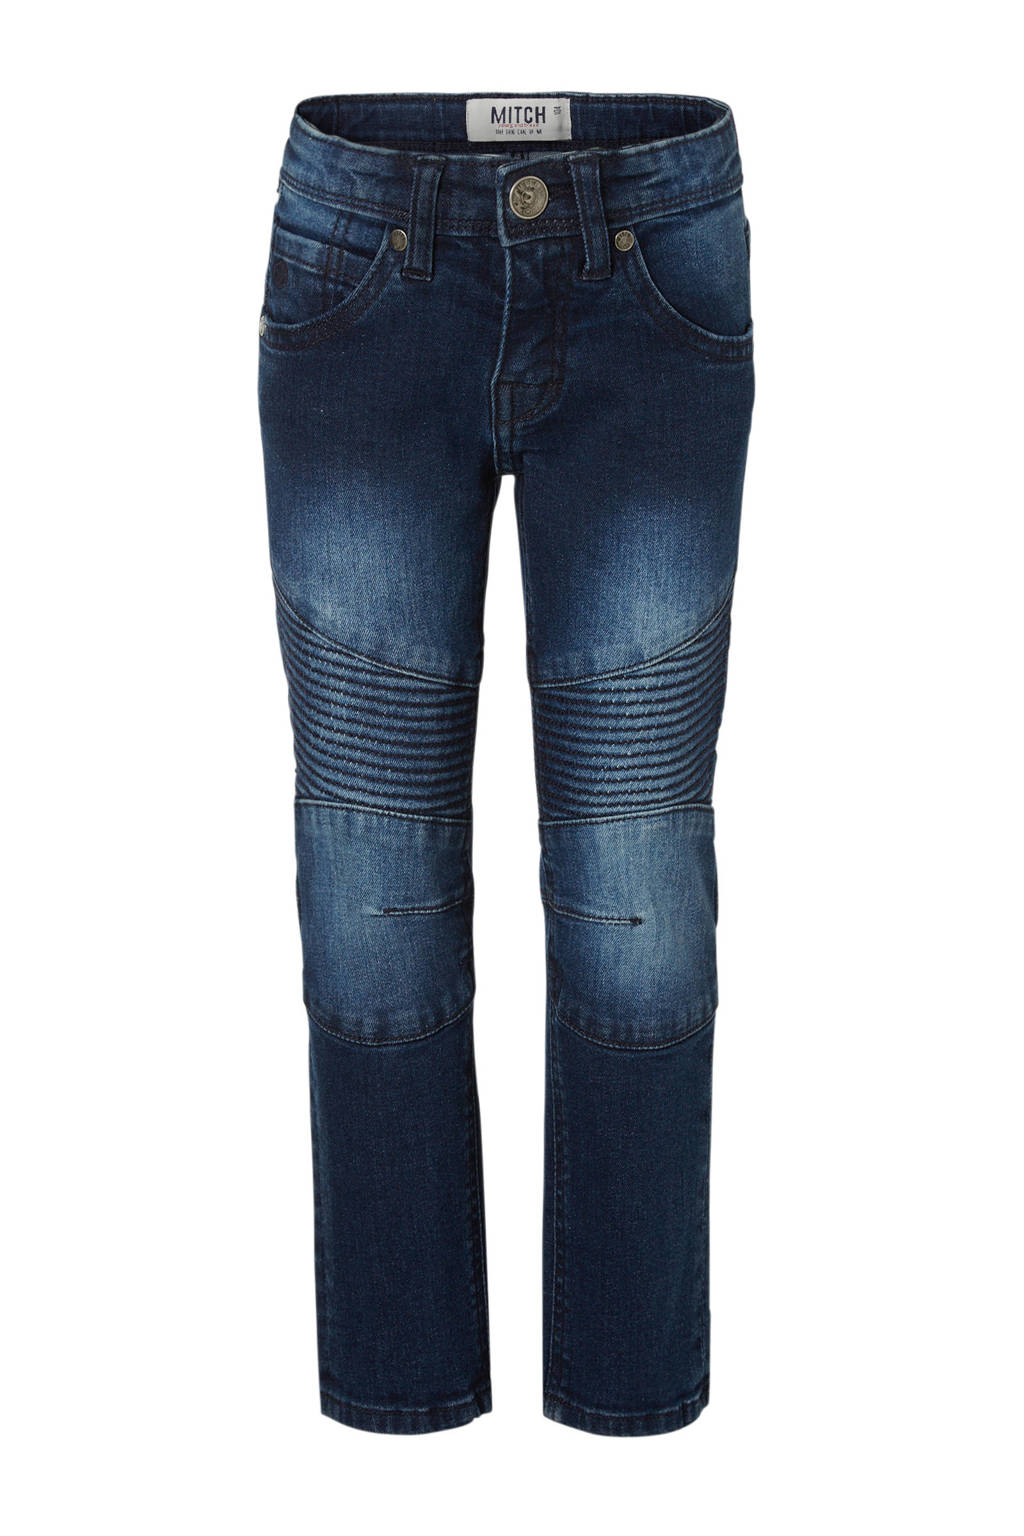 Mitch slim fit jeans Paco, Dark denim